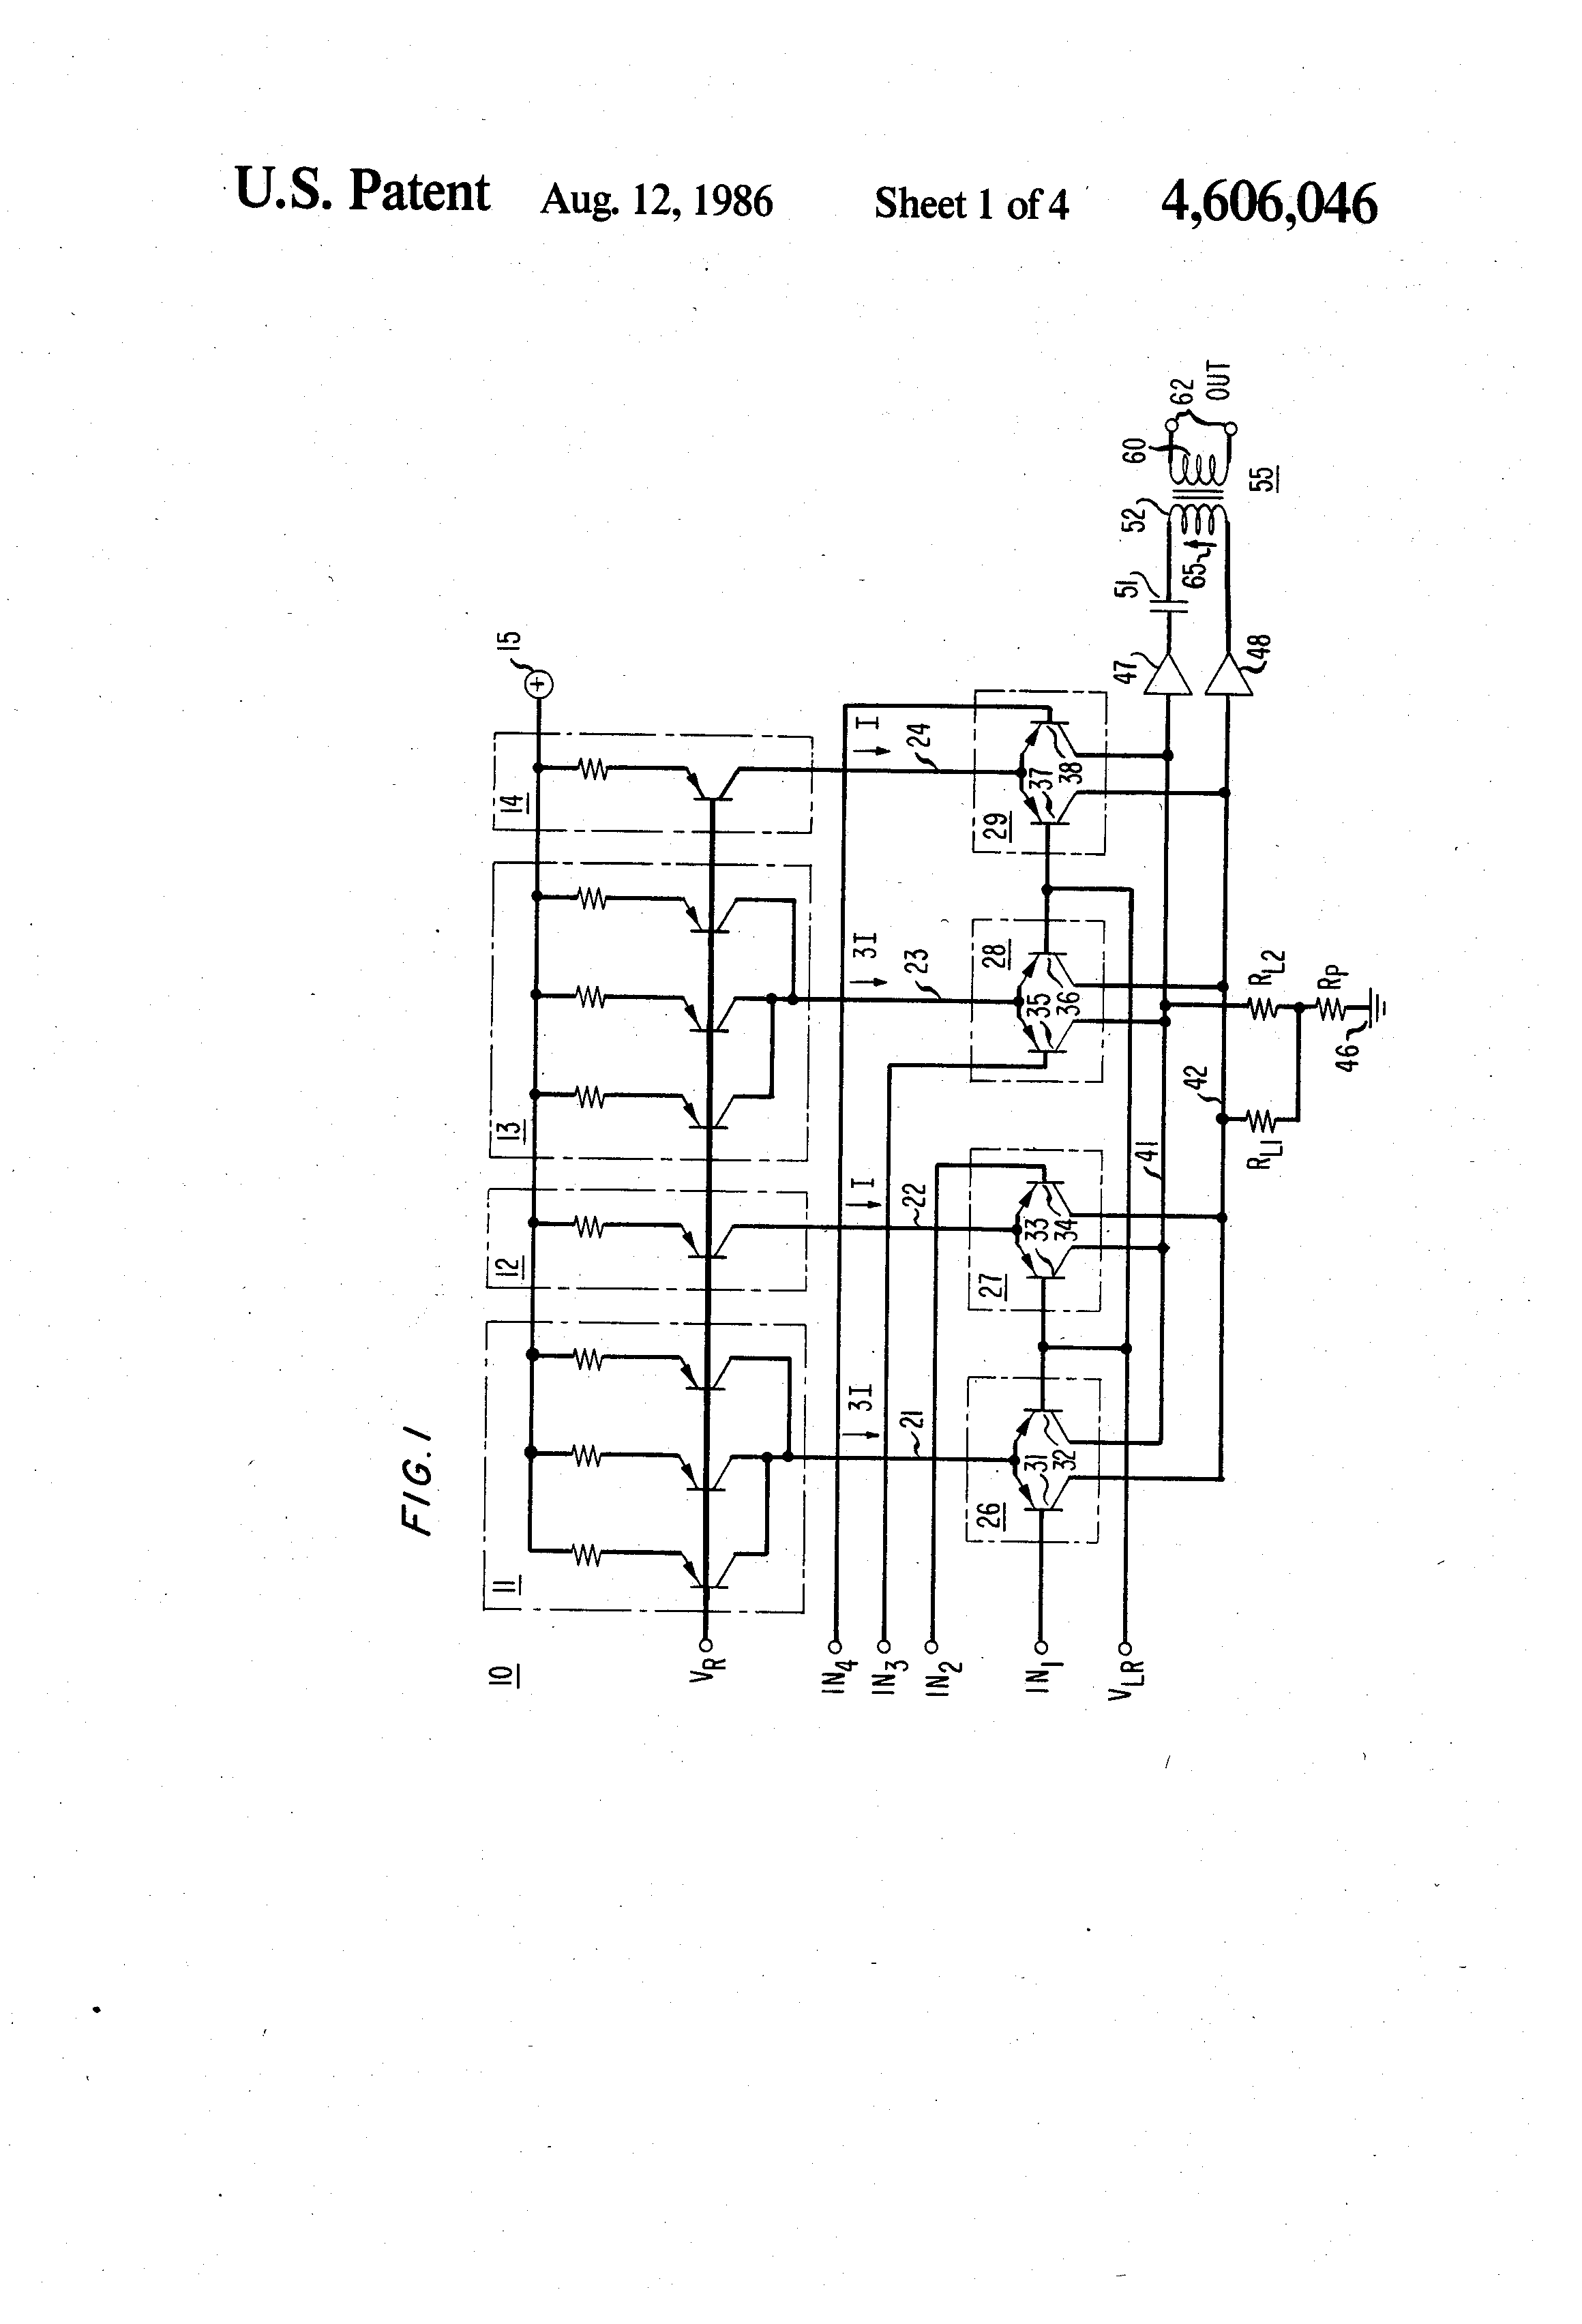 Repeater emitter transistor: principle of operation 71